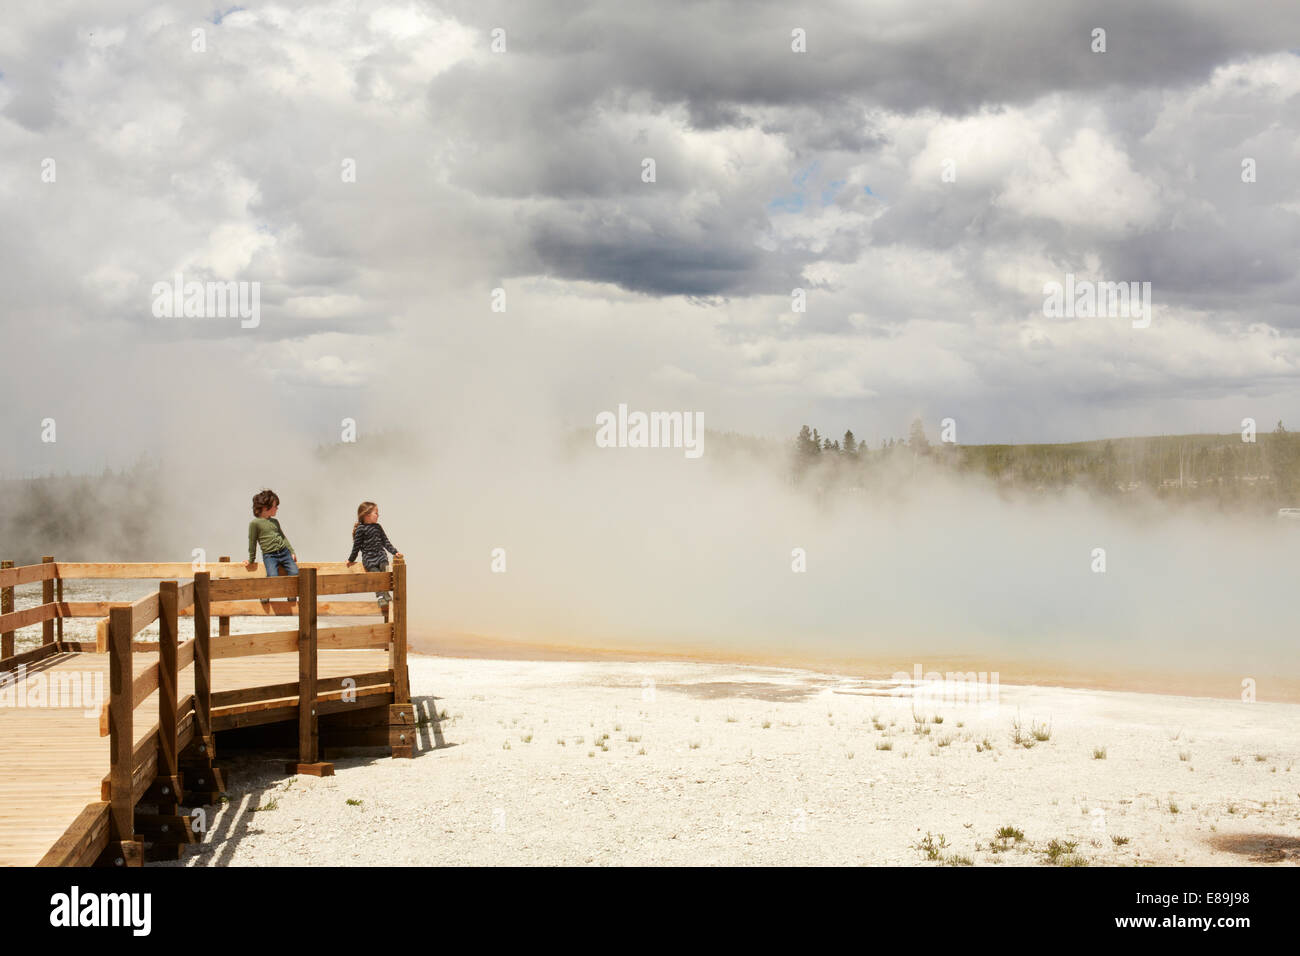 Kids looking at Geysers in Yellowstone - Stock Image